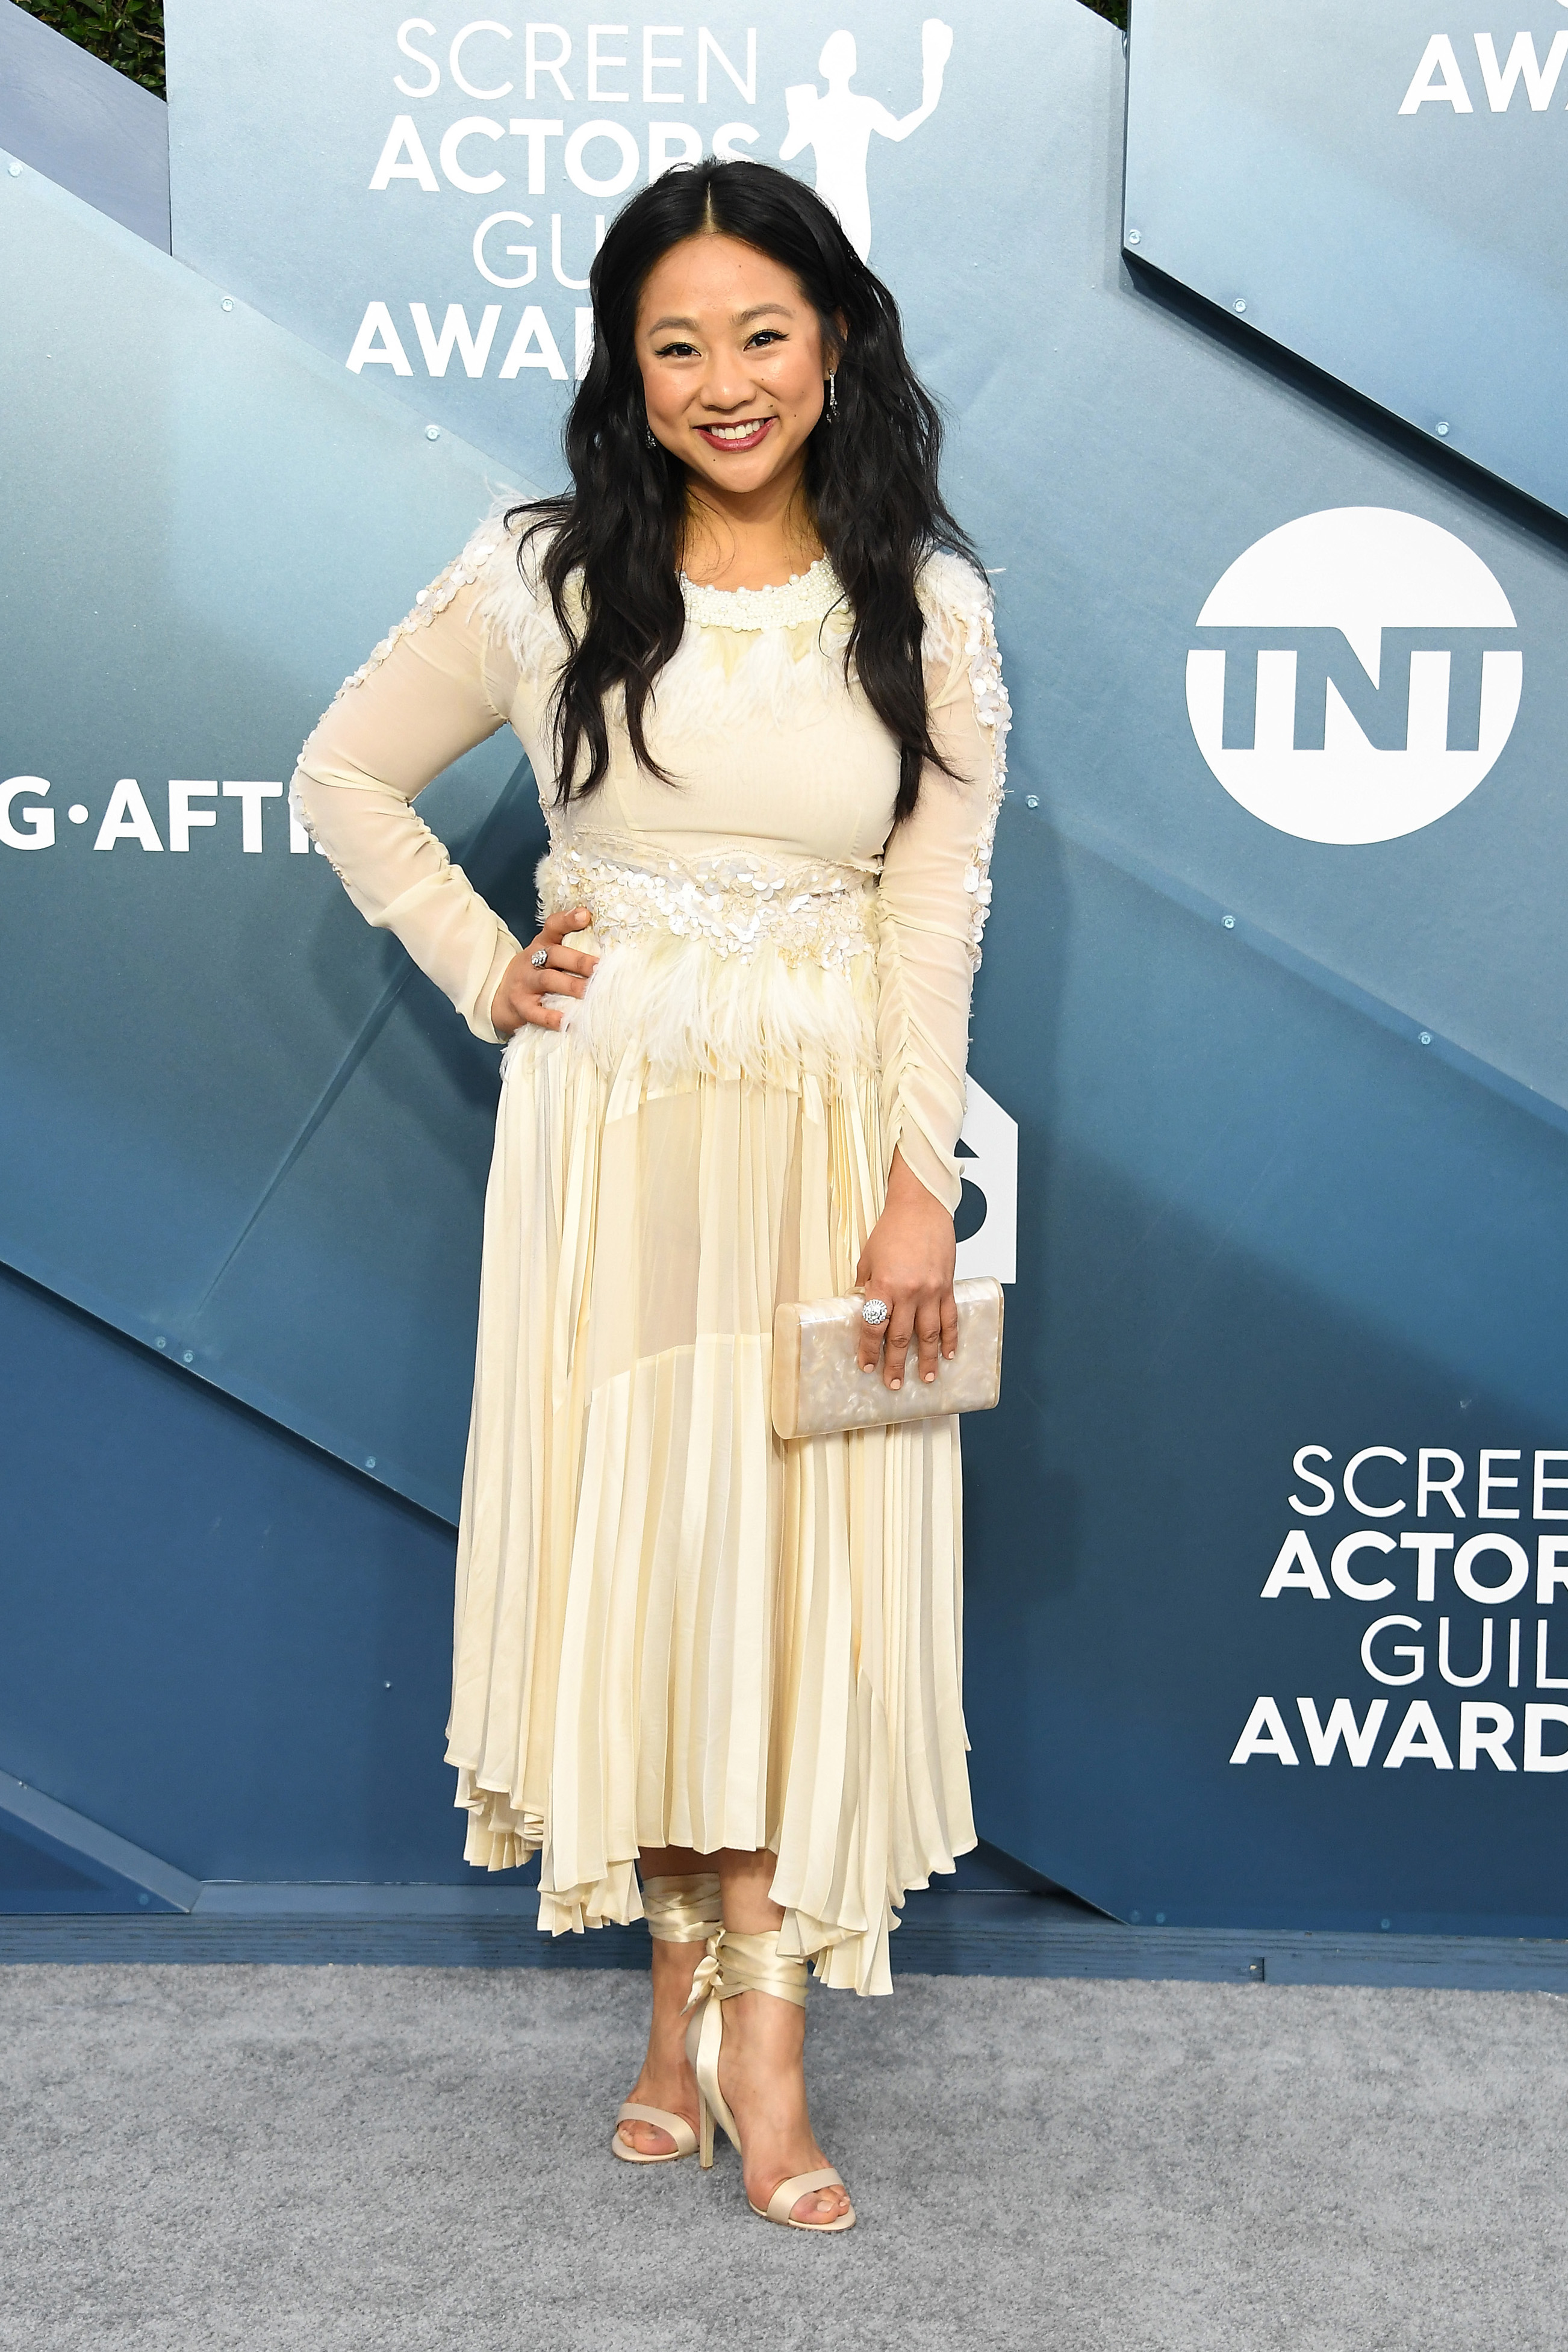 LOS ANGELES, CALIFORNIA - JANUARY 19: Stephanie Hsu attends the 26th Annual Screen ActorsGuild Awards at The Shrine Auditorium on January 19, 2020 in Los Angeles, California. (Photo by Steve Granitz/WireImage)